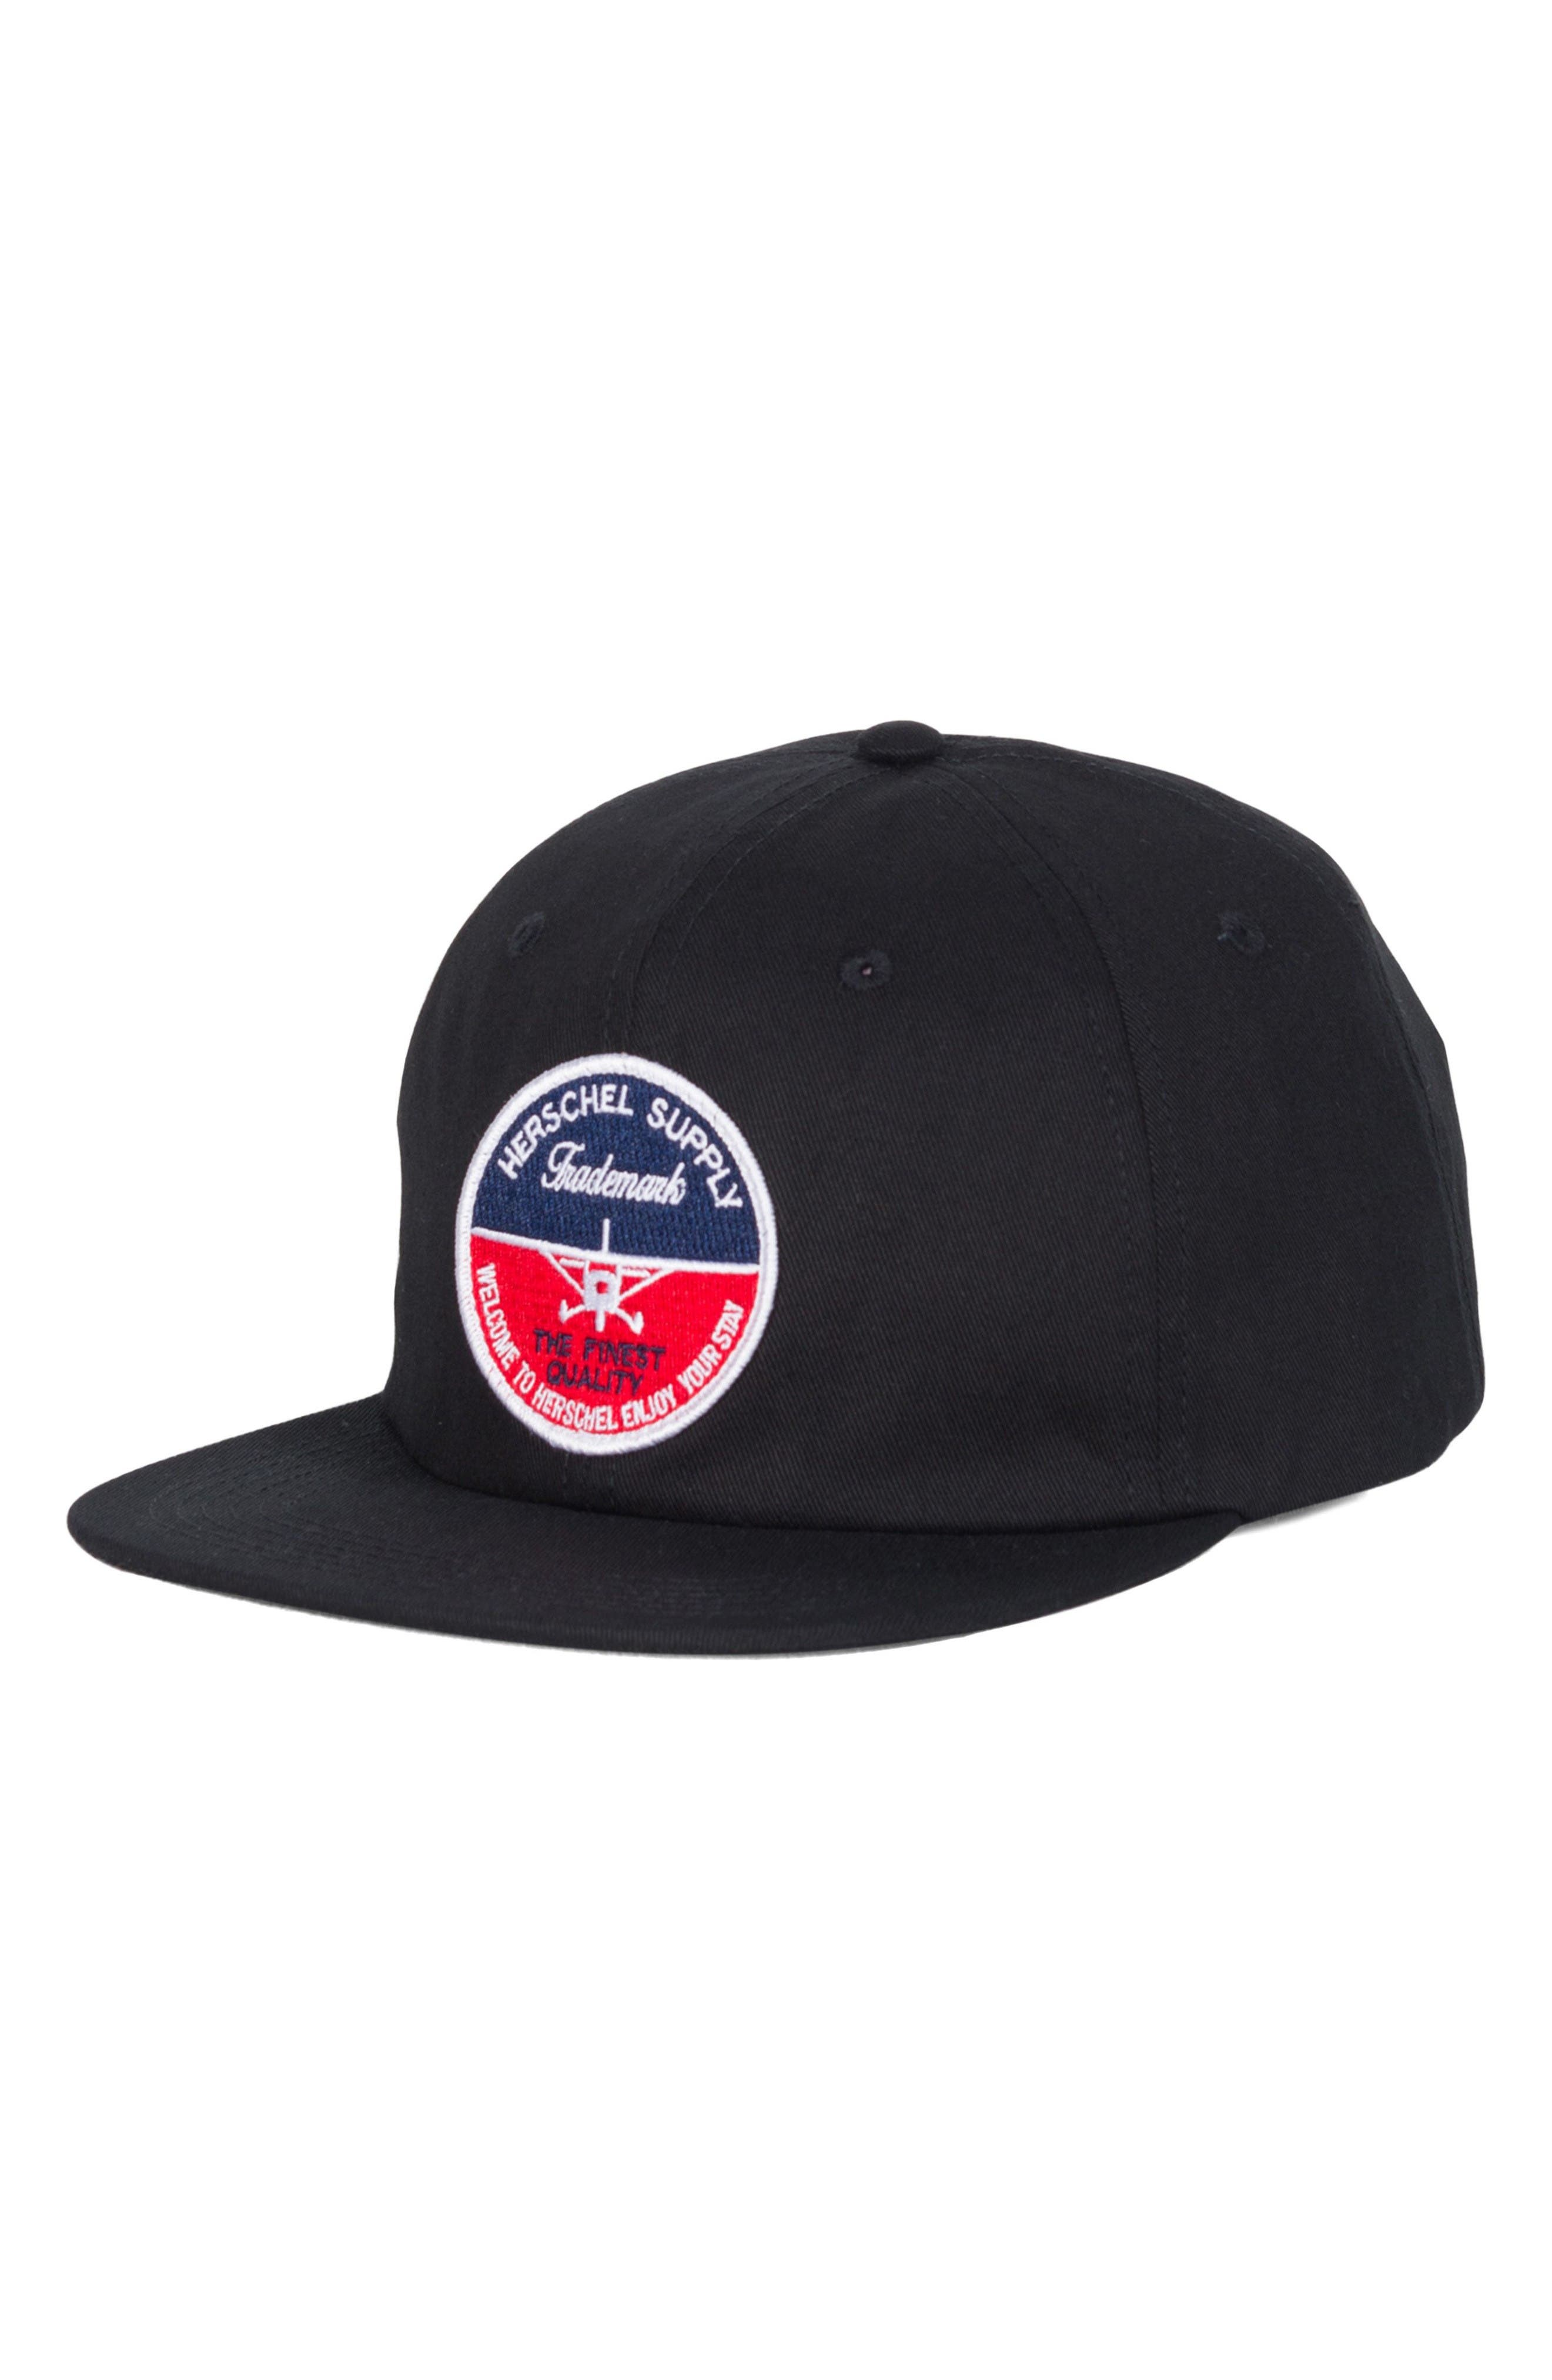 HERSCHEL SUPPLY CO. 172 Baseball Cap